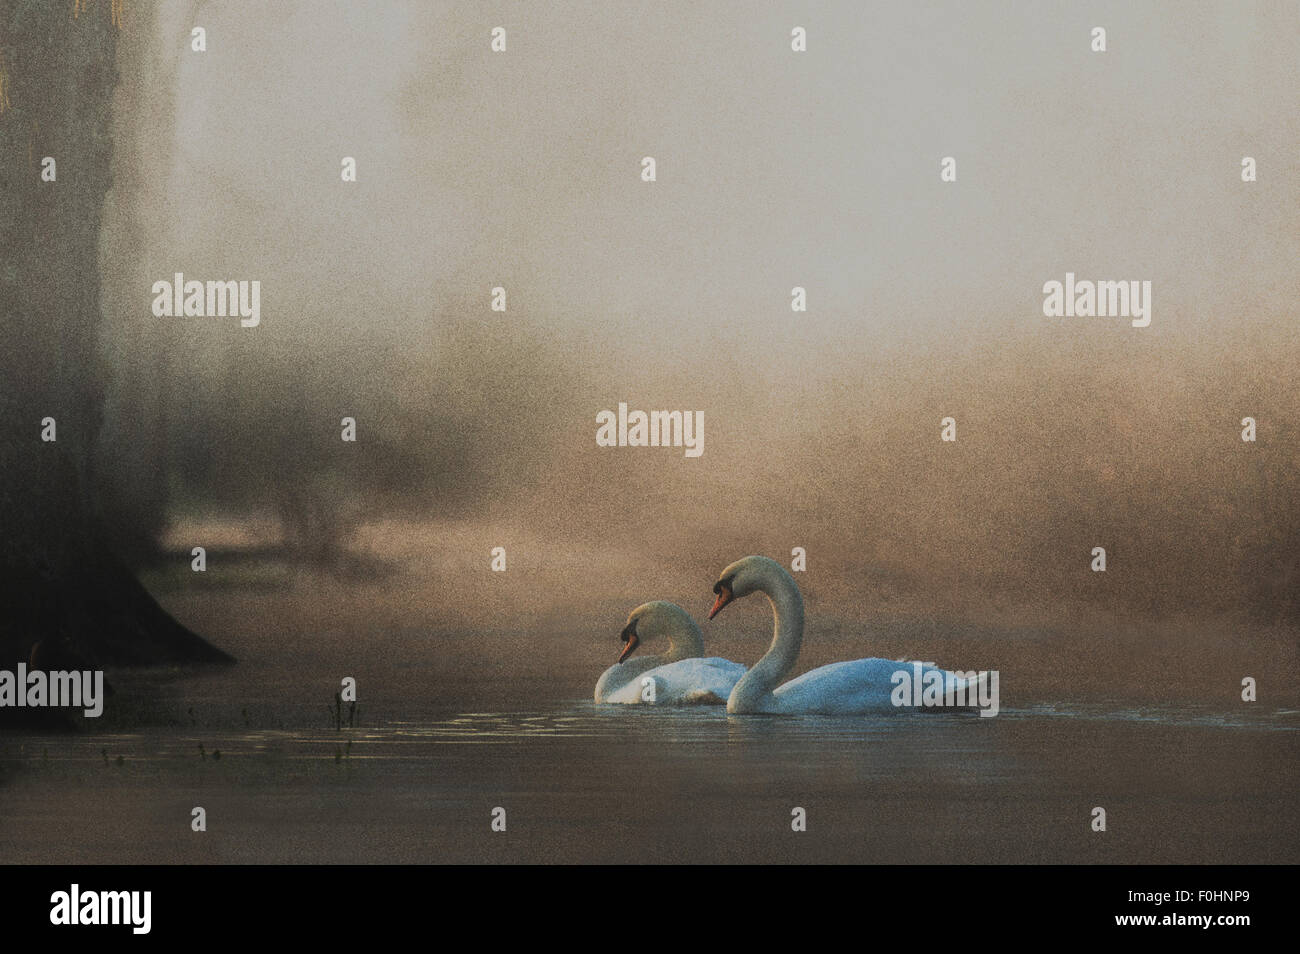 A pair of Swans on river in morning mist Stock Photo